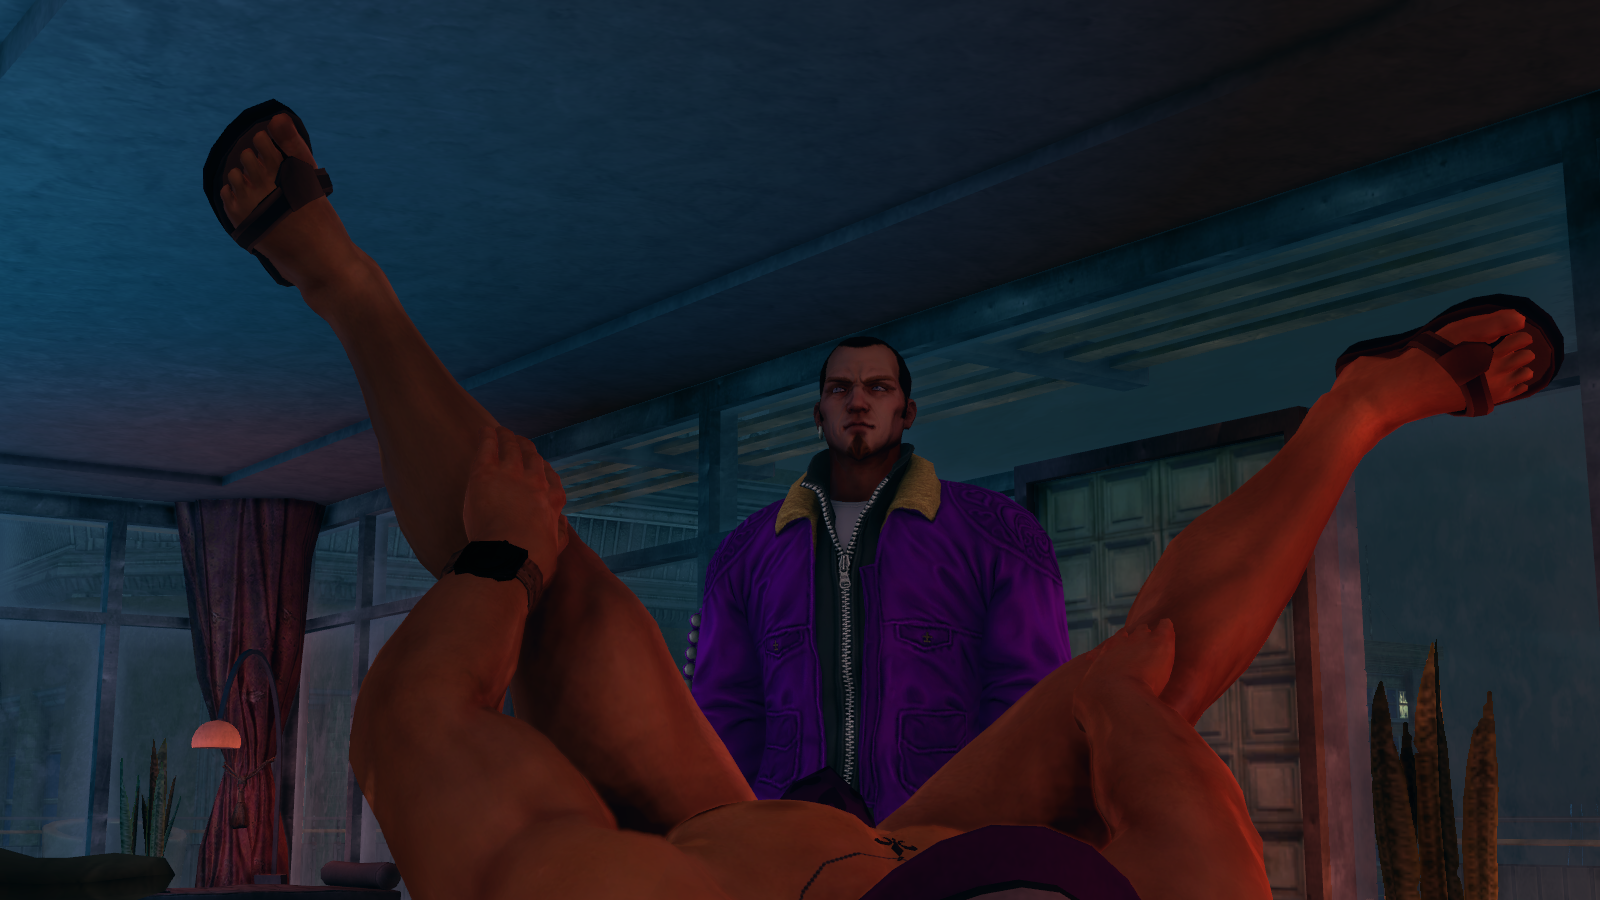 Nude tit saints row sexy scene